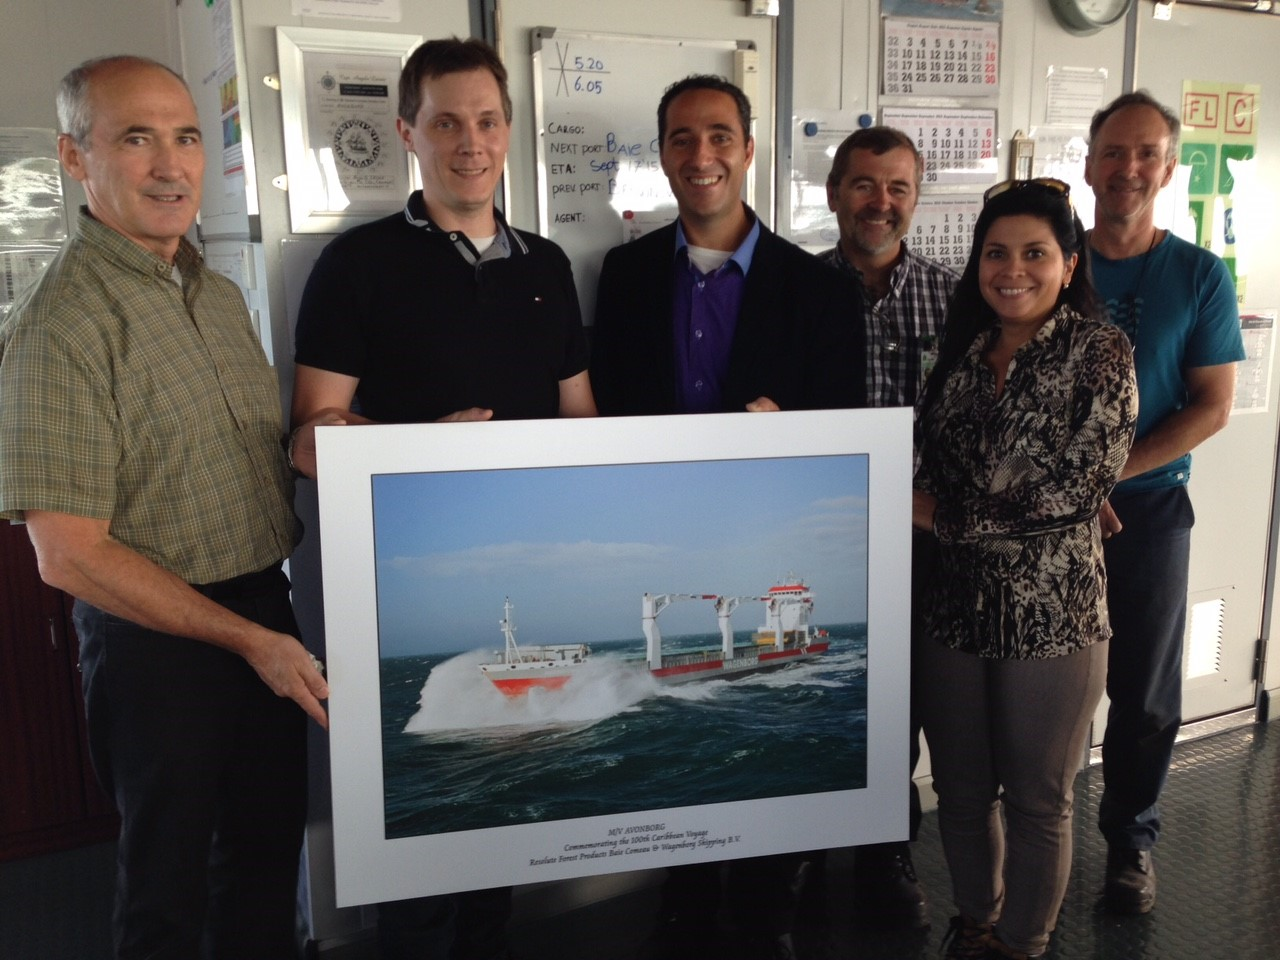 From left to right: Paul Blanchard (Production Manager), Francois -Sebastien Gaudreau (Mill Manager), Marco Renzelli, Guy Hall (Superintendent Finishing and Shipping), Gabriela Ramirez (Commercial Marine) and Andre Michaud Load (Superintendent)